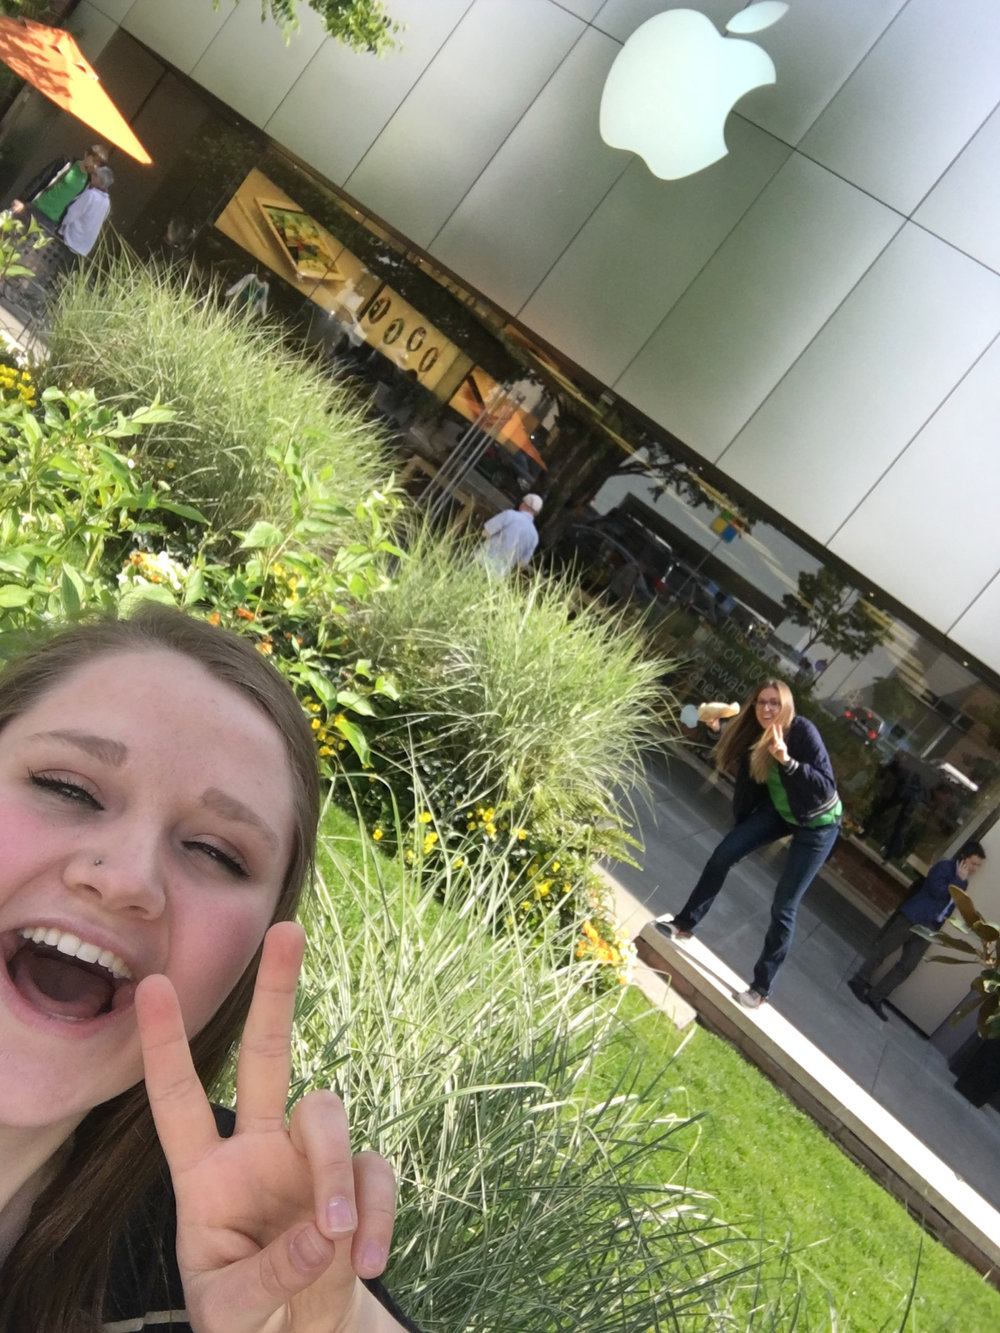 - Photobombing a visiting coworker's selfie (from the Spokane store).